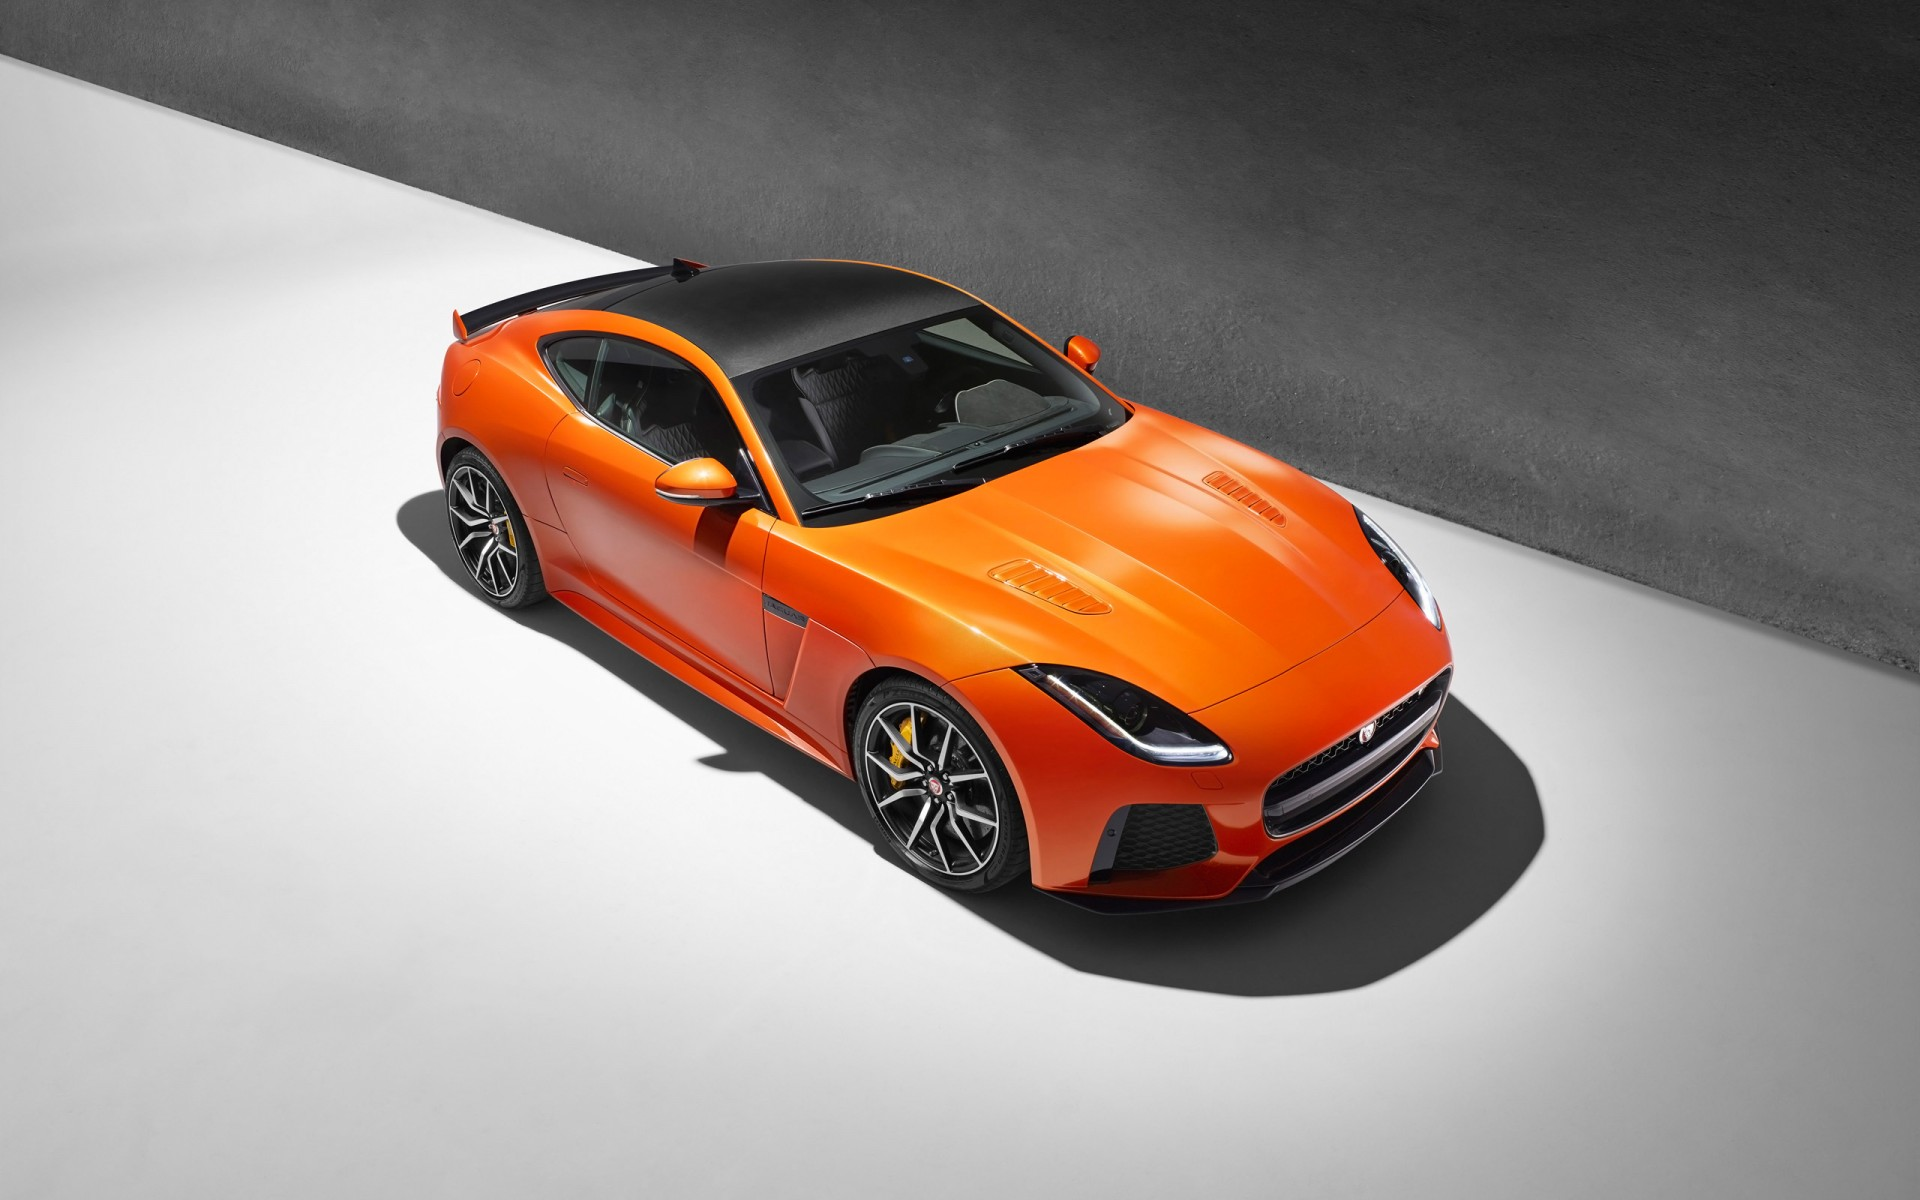 Dynamic Iphone X Wallpaper 2017 Jaguar F Type Svr Coupe Wallpapers Hd Wallpapers